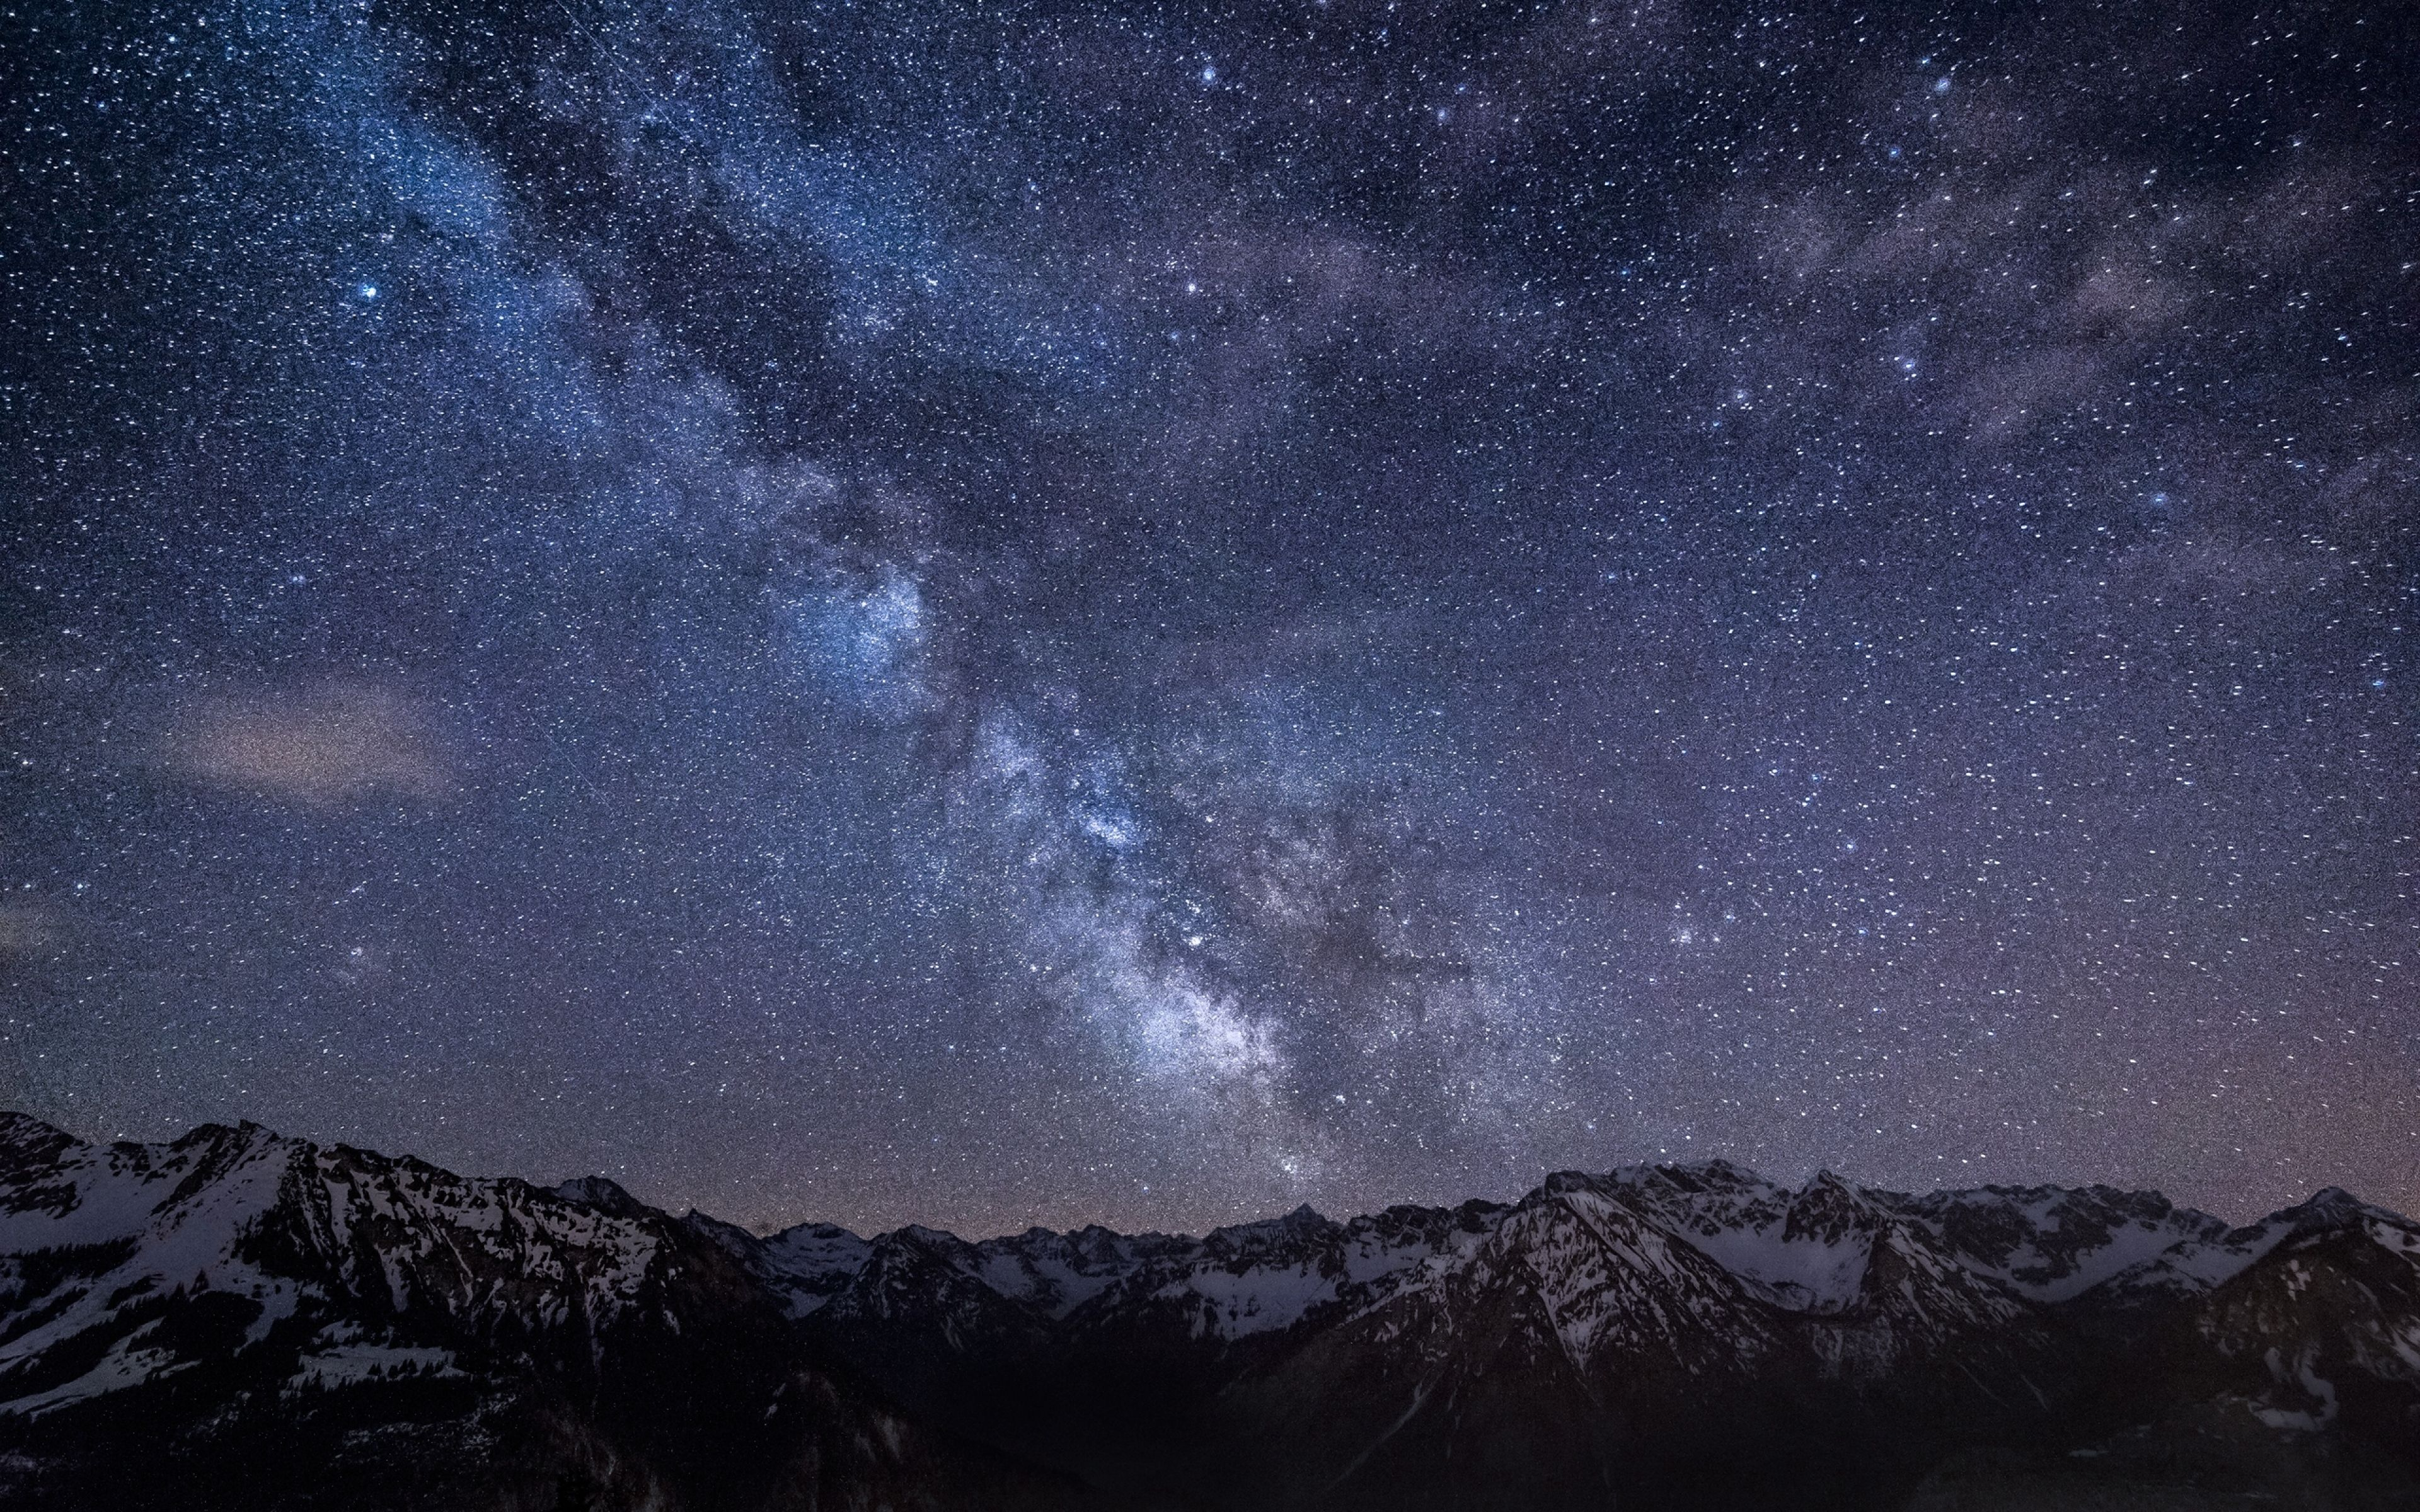 3840x2400 Wallpaper Milky Way Stars Mountains Night Germany Bavaria Sky Night Sky Wallpaper Night Landscape Mountain Wallpaper